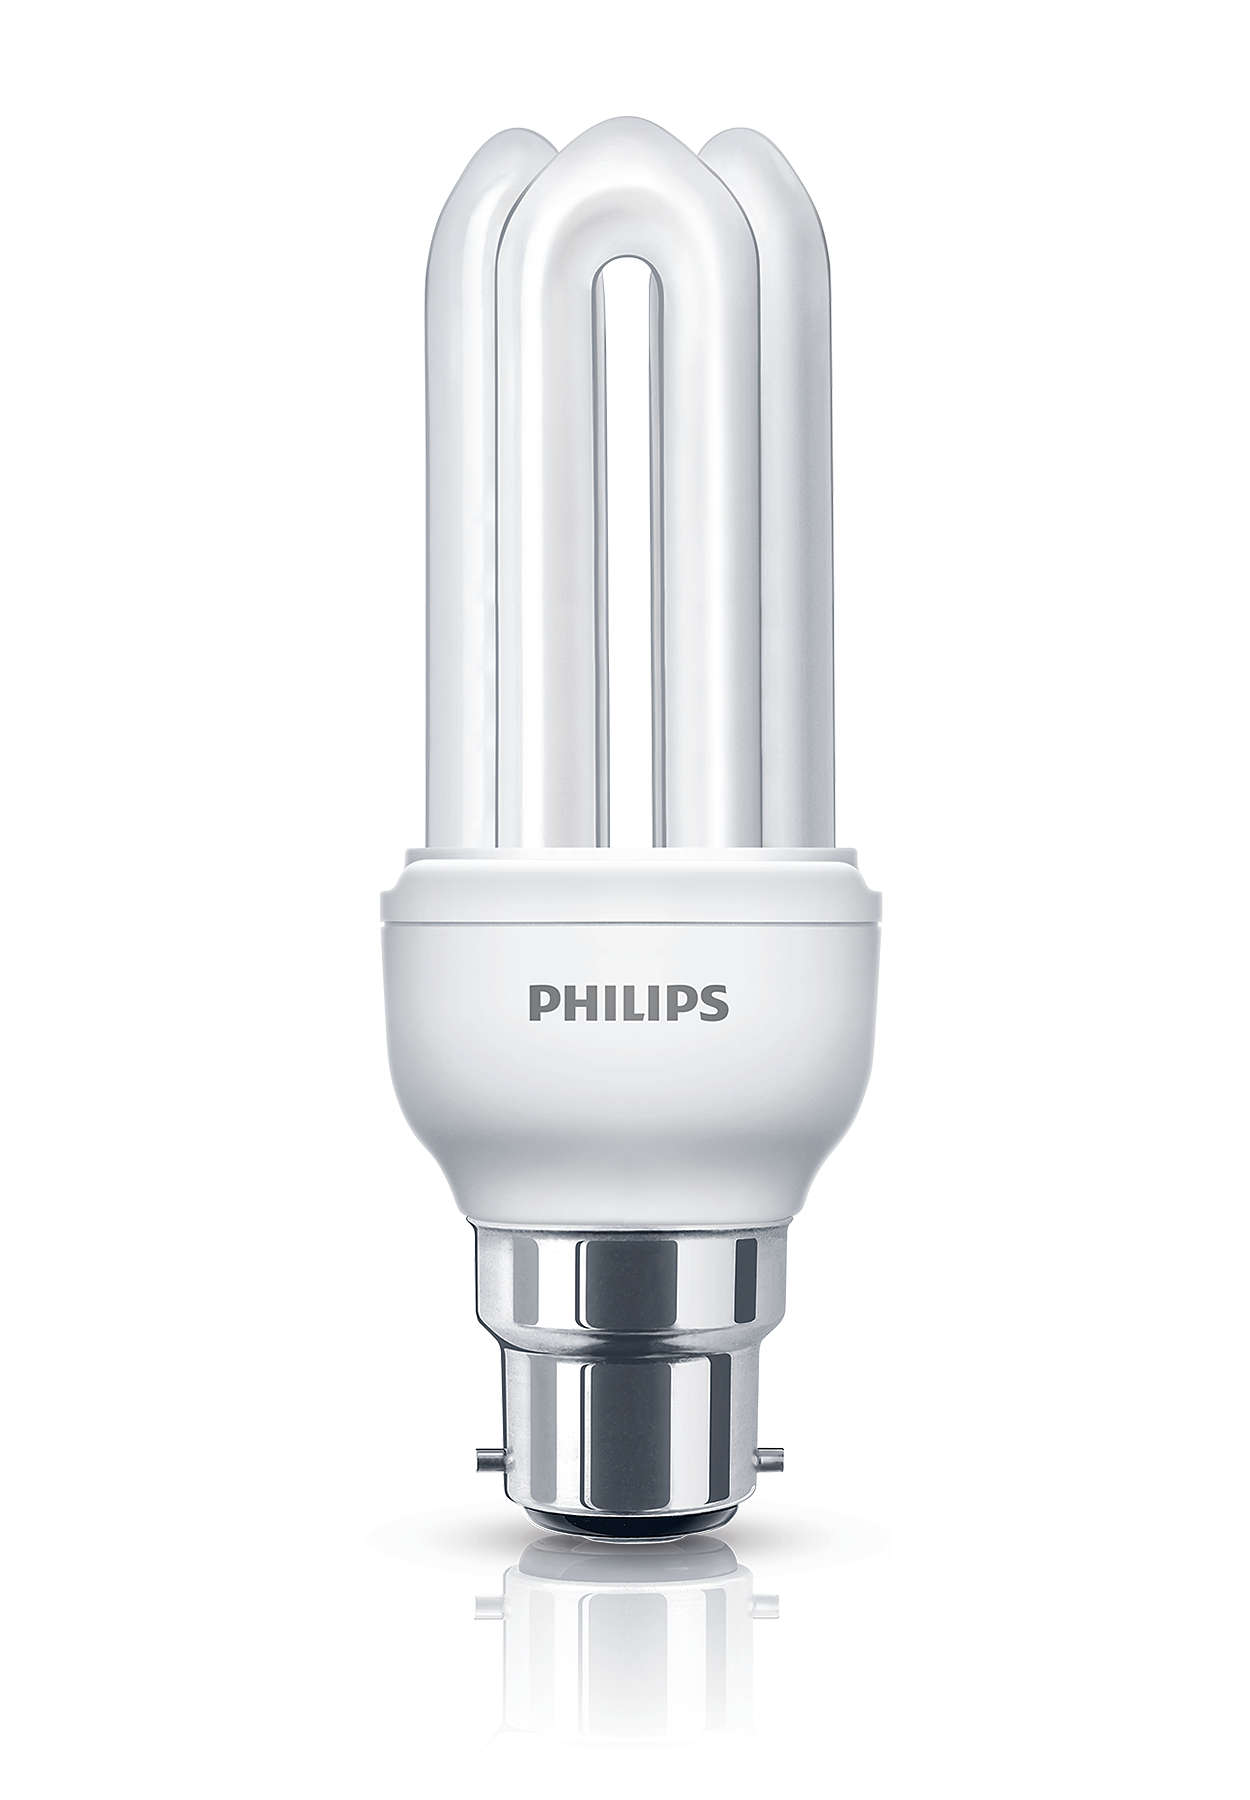 genie stick energy saving bulb 8710163224077 philips. Black Bedroom Furniture Sets. Home Design Ideas